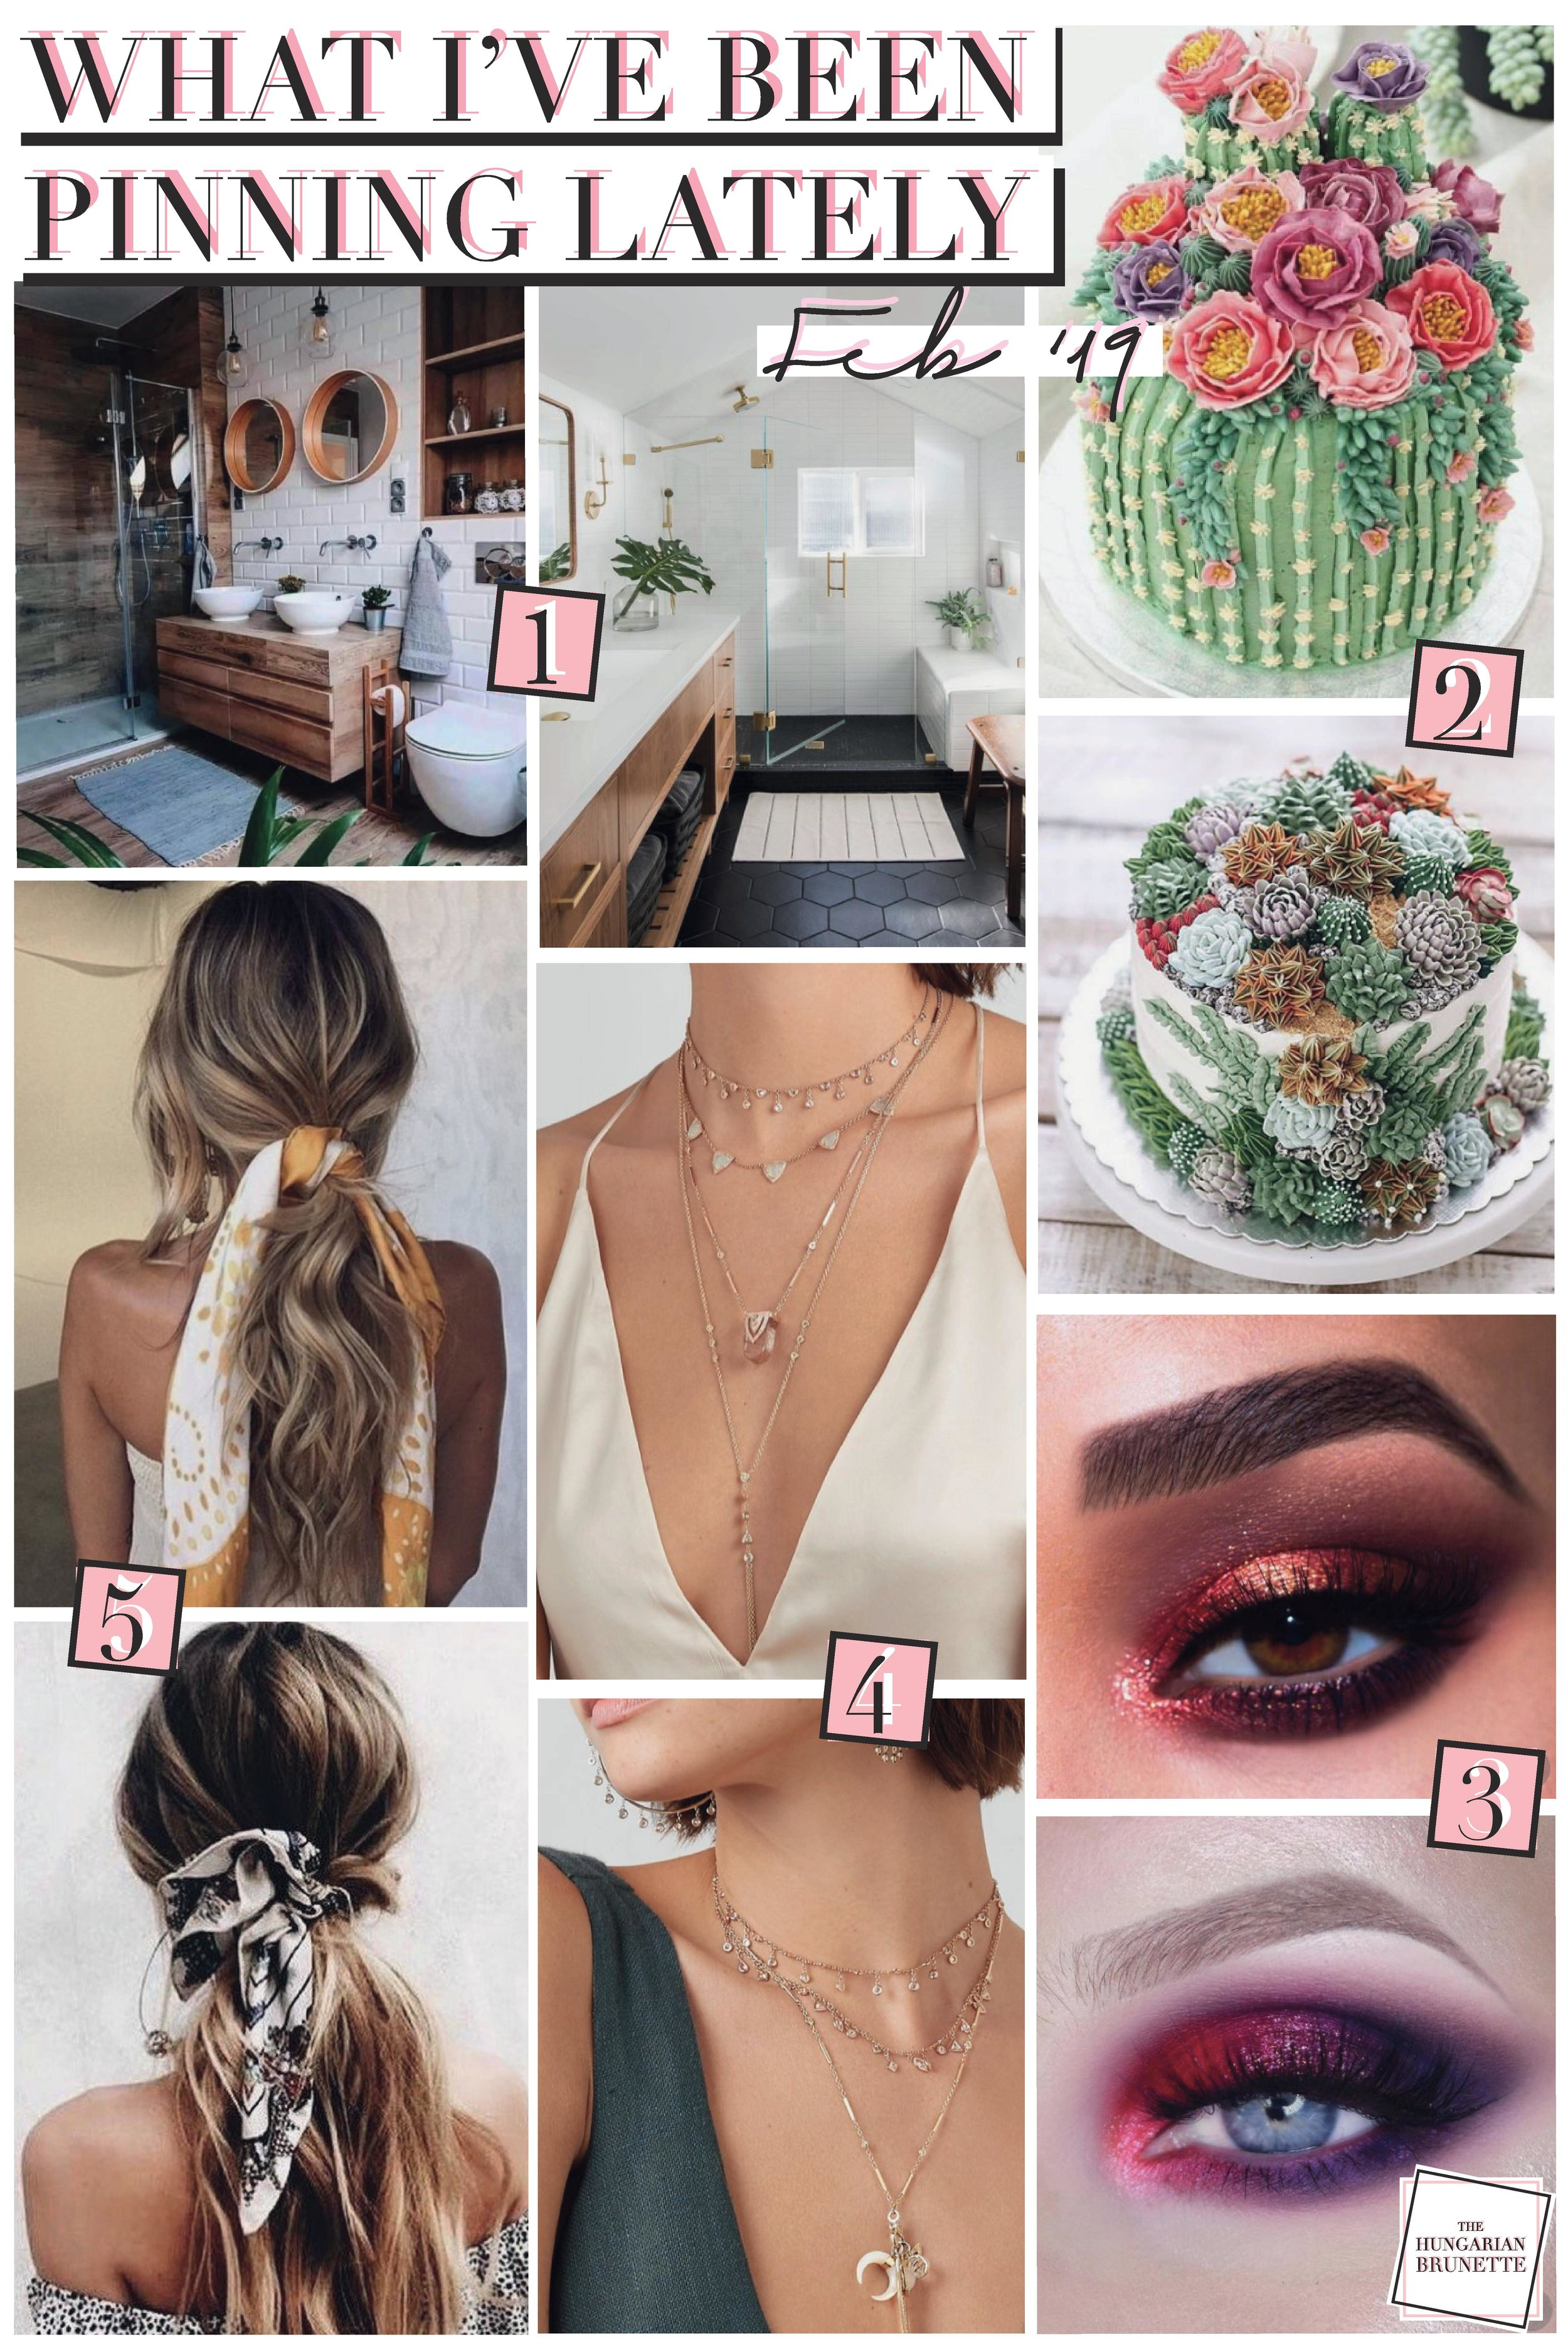 The Hungarian Brunette - What I've been pinning lately - feb 19